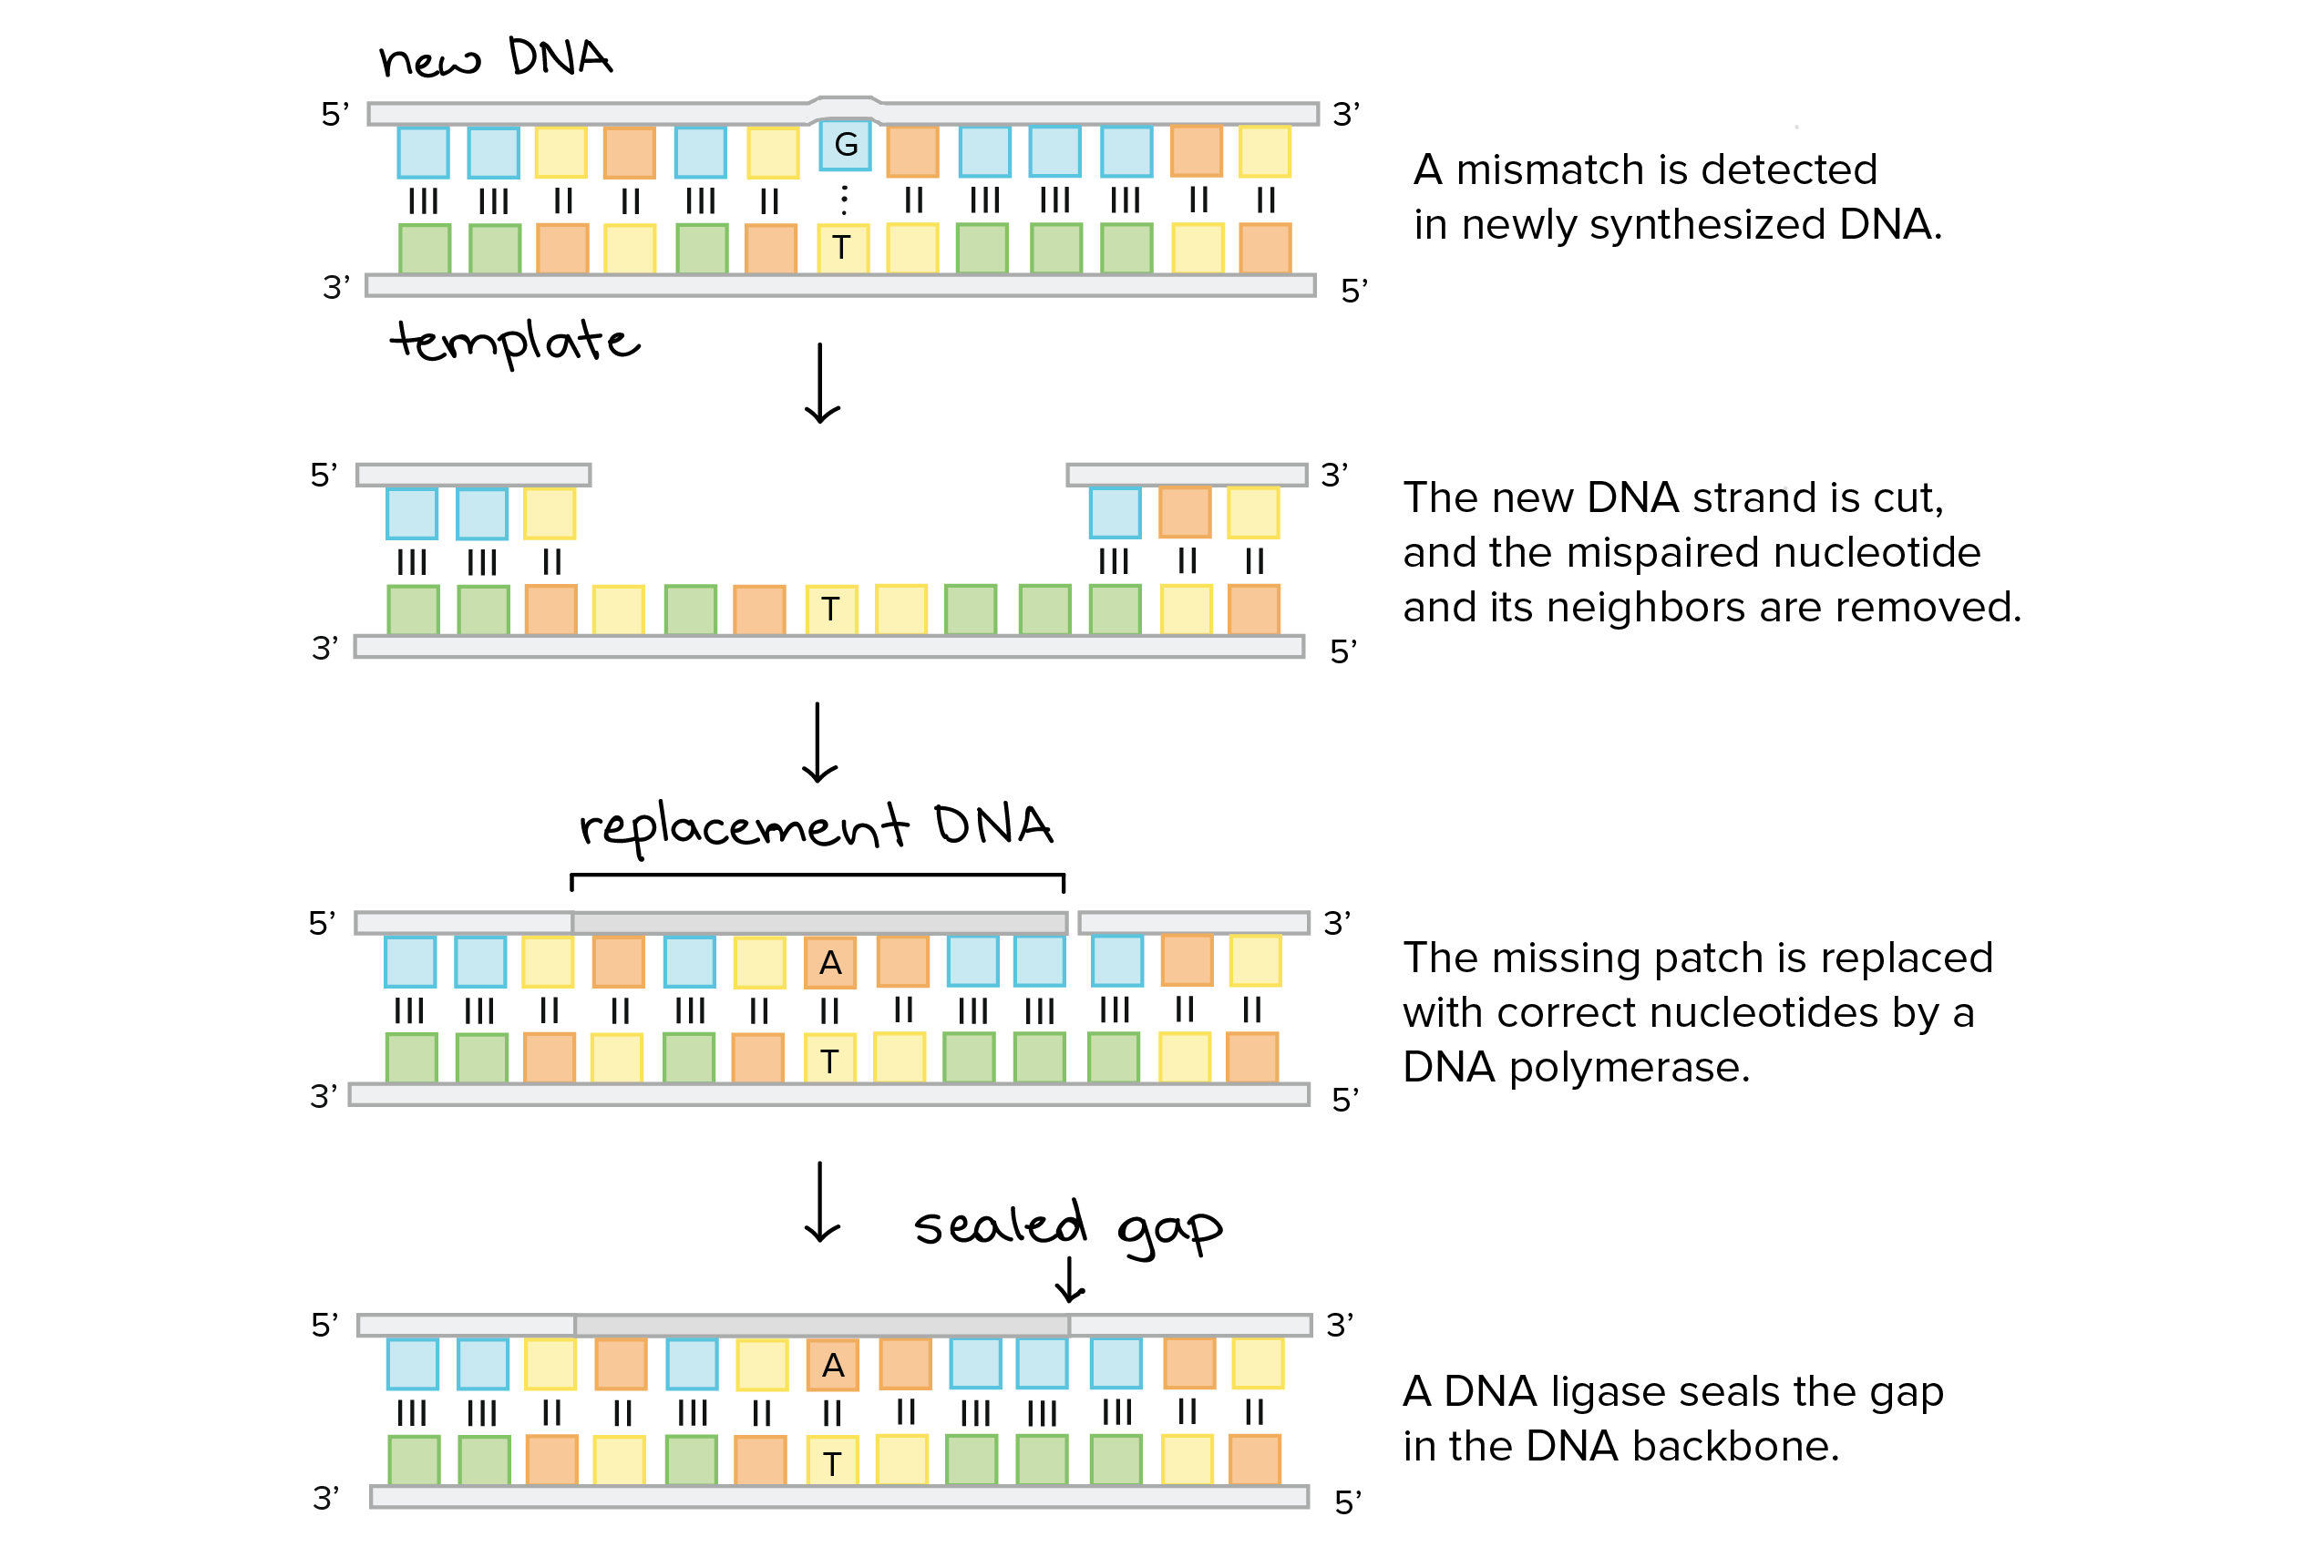 Dna replication homework for Explain how dna serves as its own template during replication